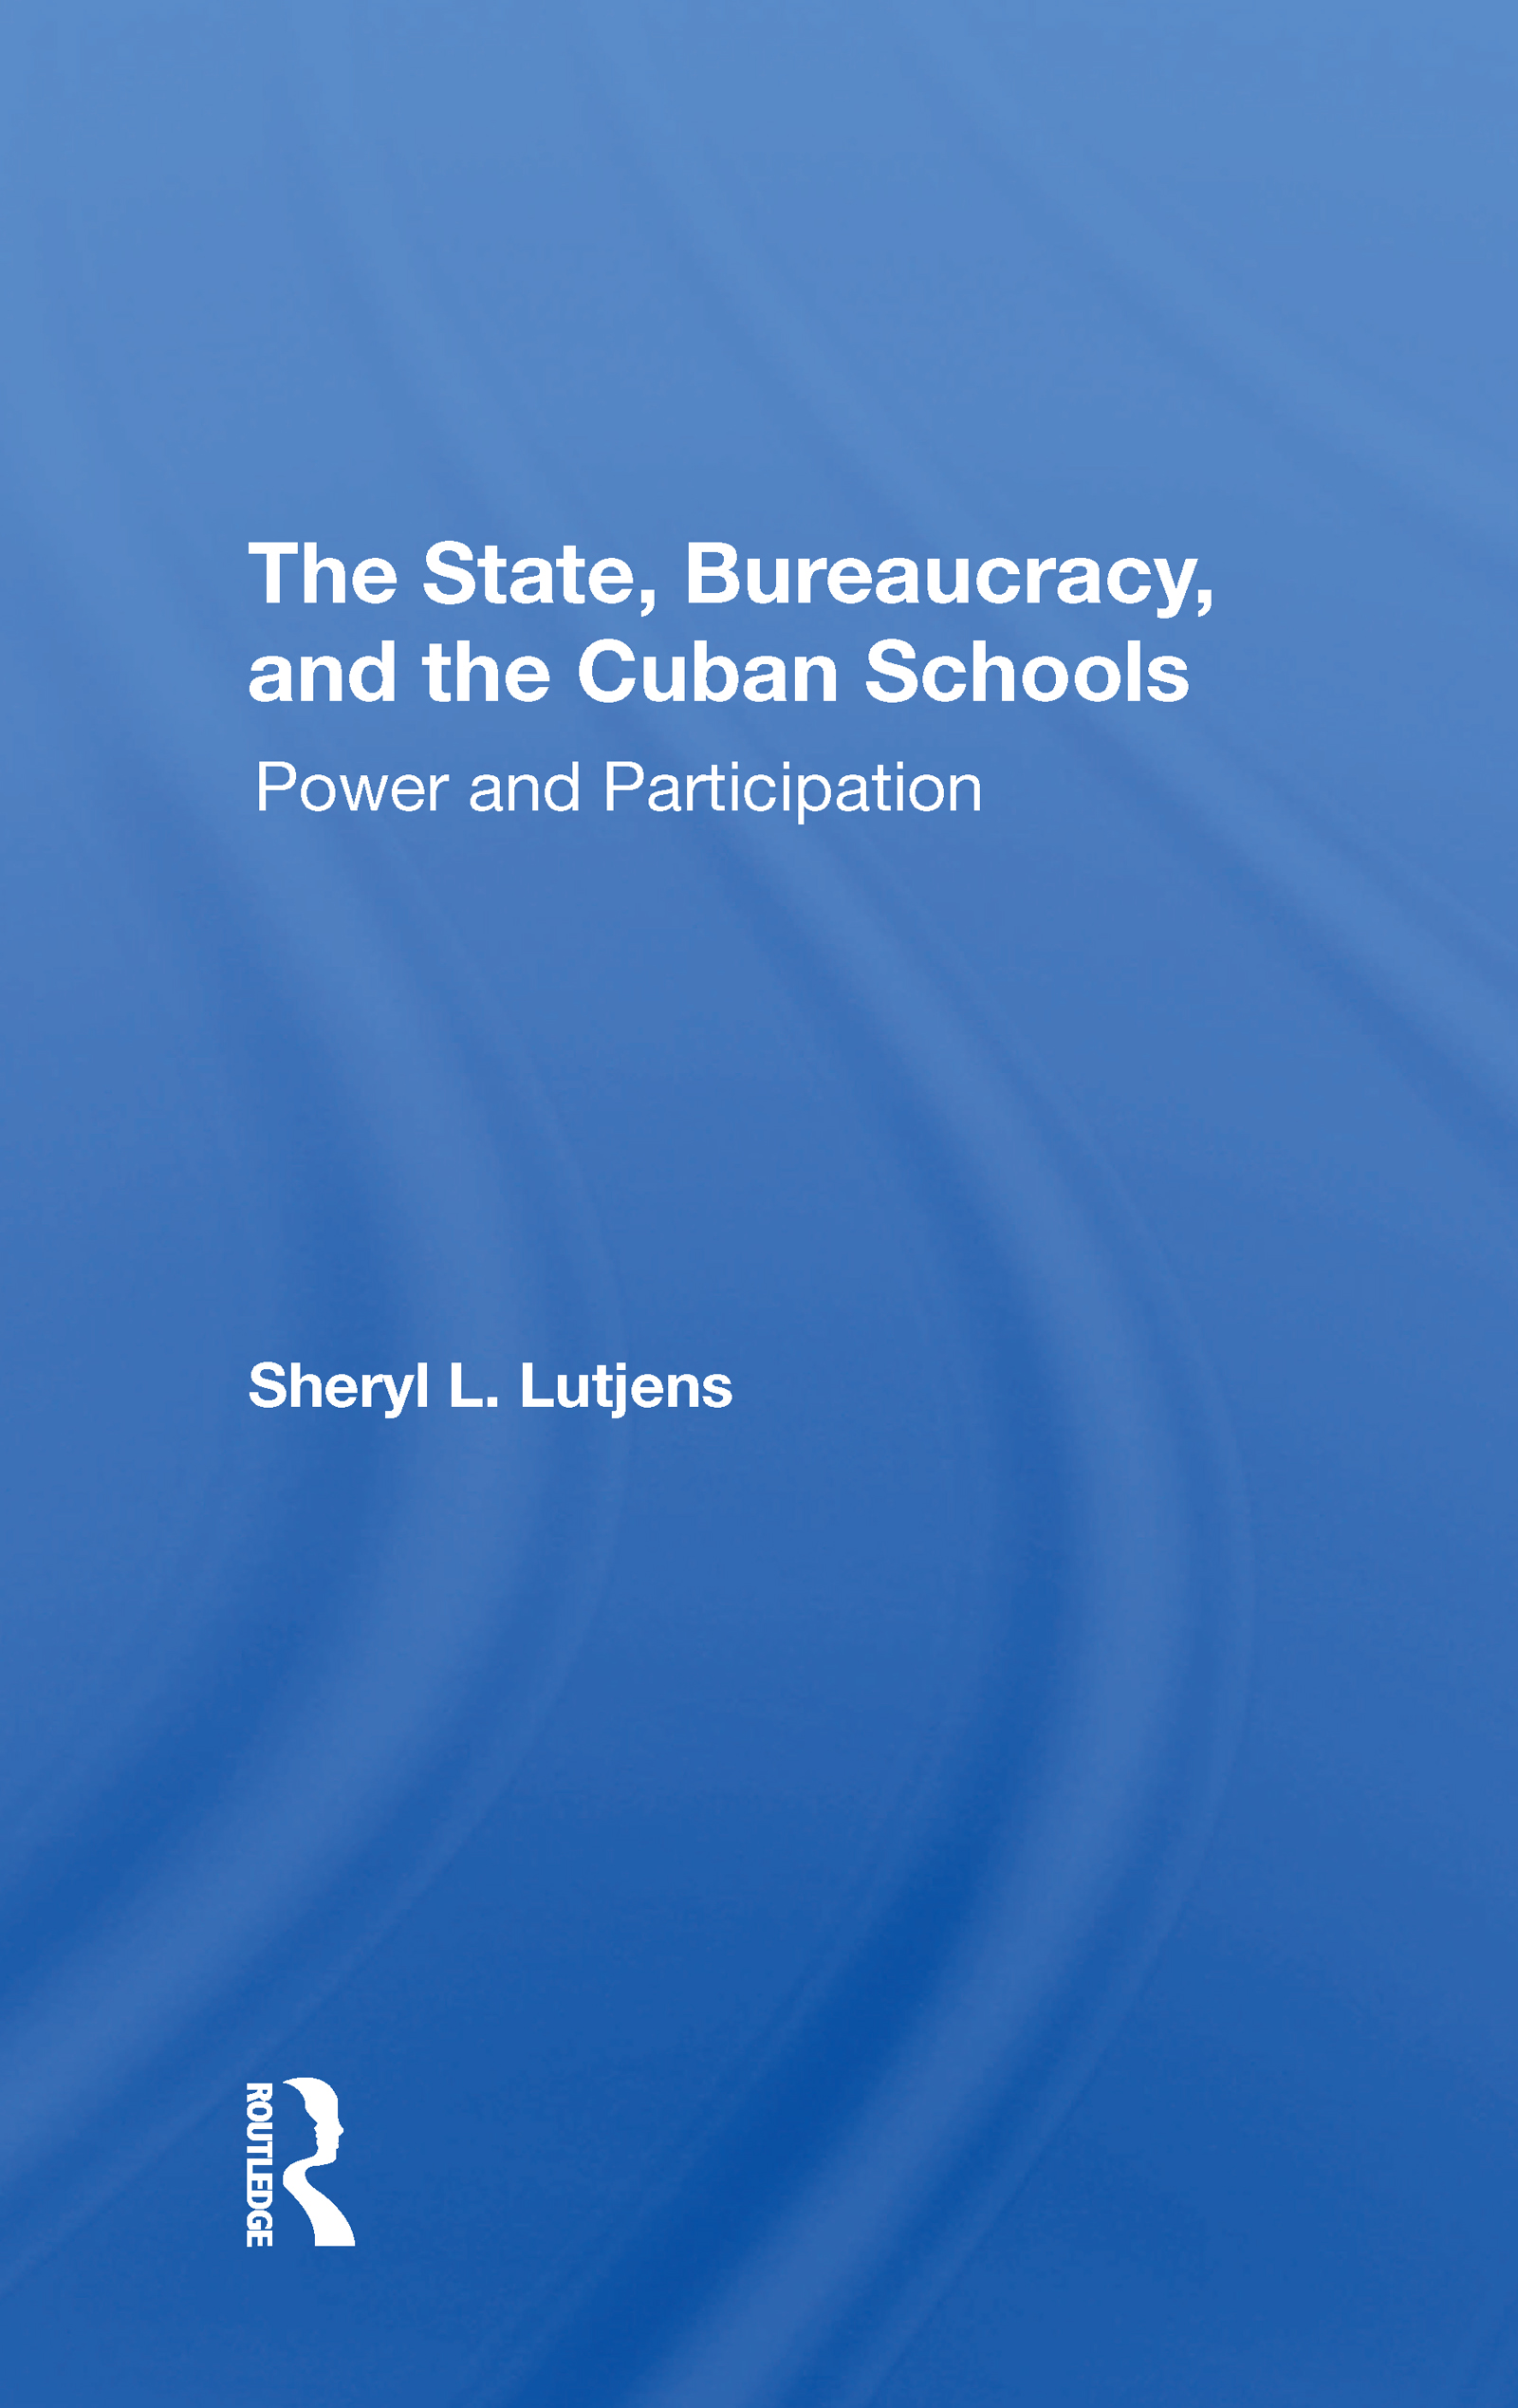 The State, Bureaucracy, And The Cuban Schools